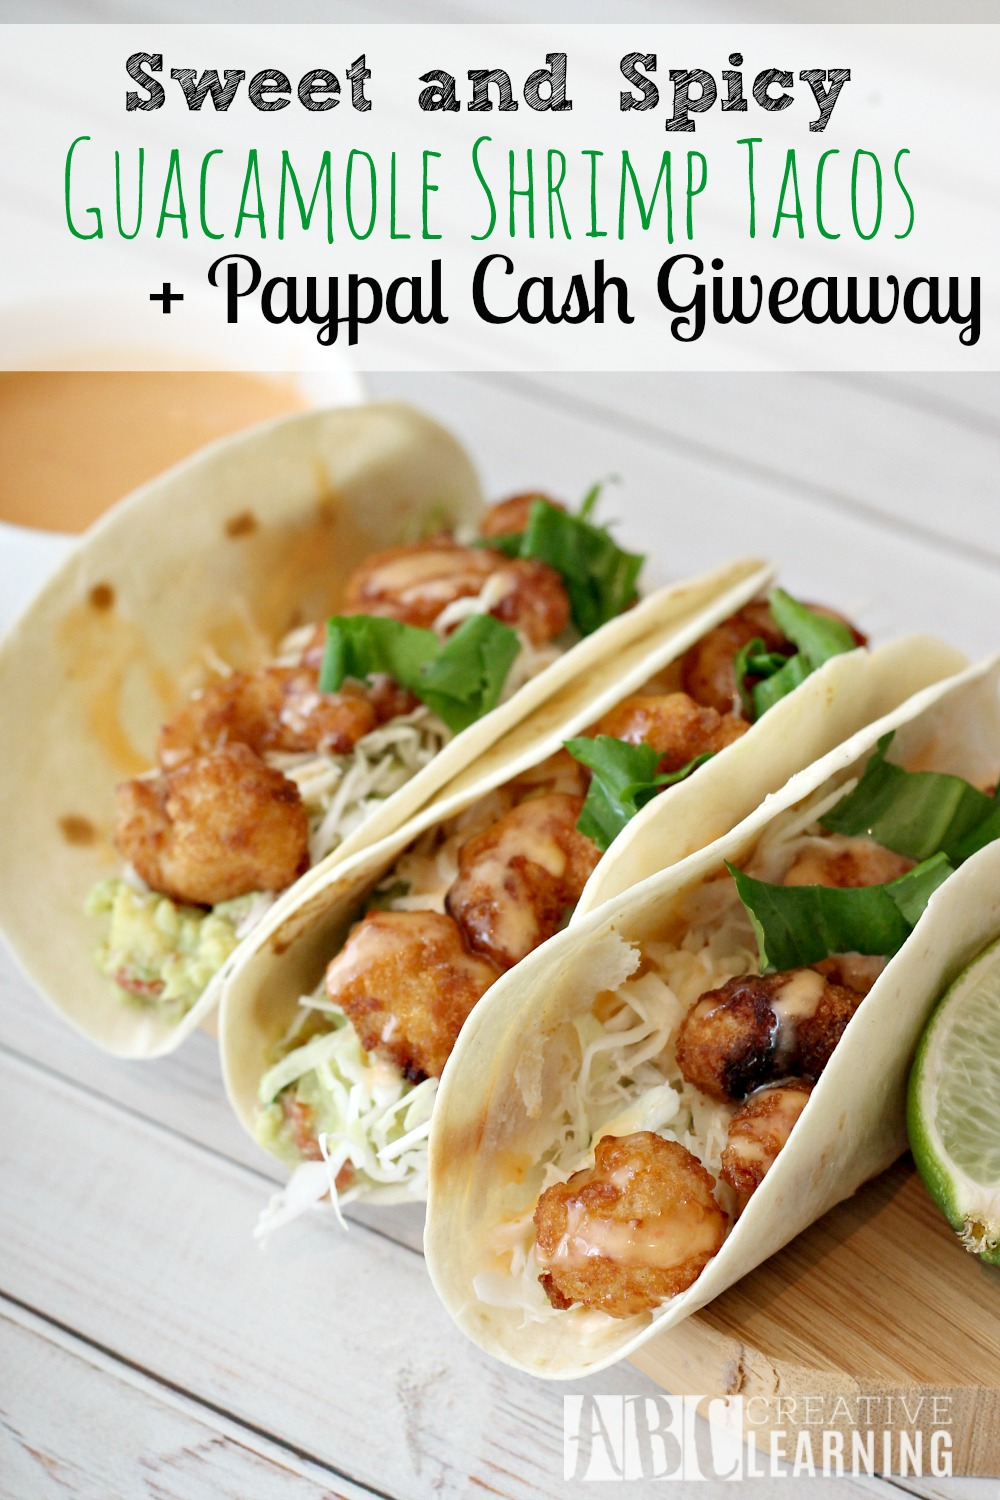 Sweet and Spicy Guacamole Shrimp Tacos giveaway